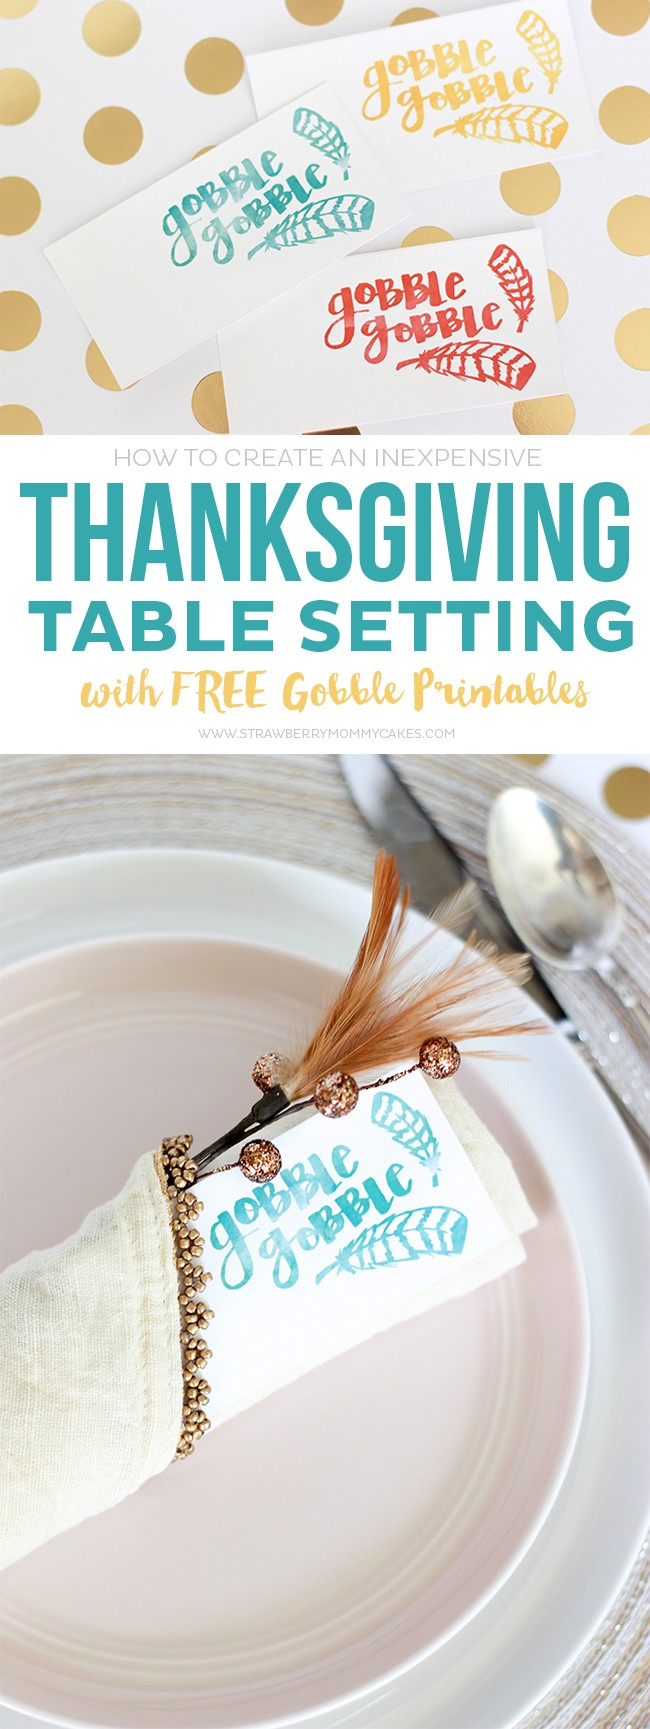 You don't have to break the bank to create a beautiful Thanksgiving Table Setting. Check out my helpful tips to stay in your budget this Thanksgiving!